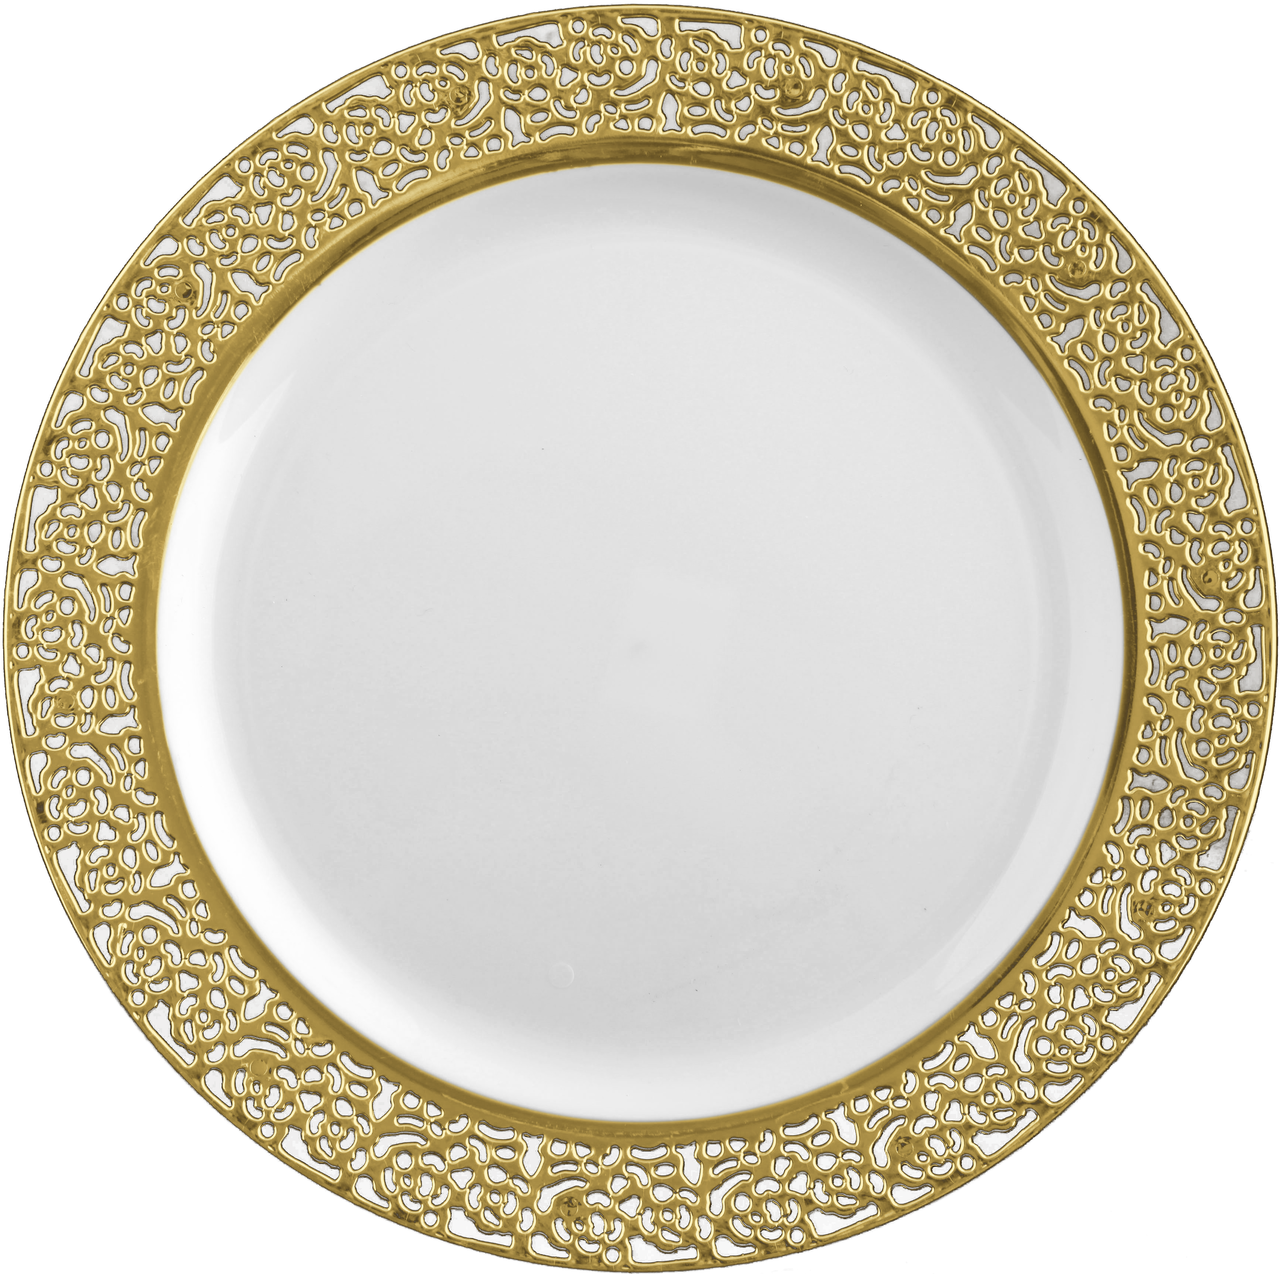 posh party supplies   inspiration white with gold plastic  - posh party supplies   inspiration white with gold plastic dinner plates (